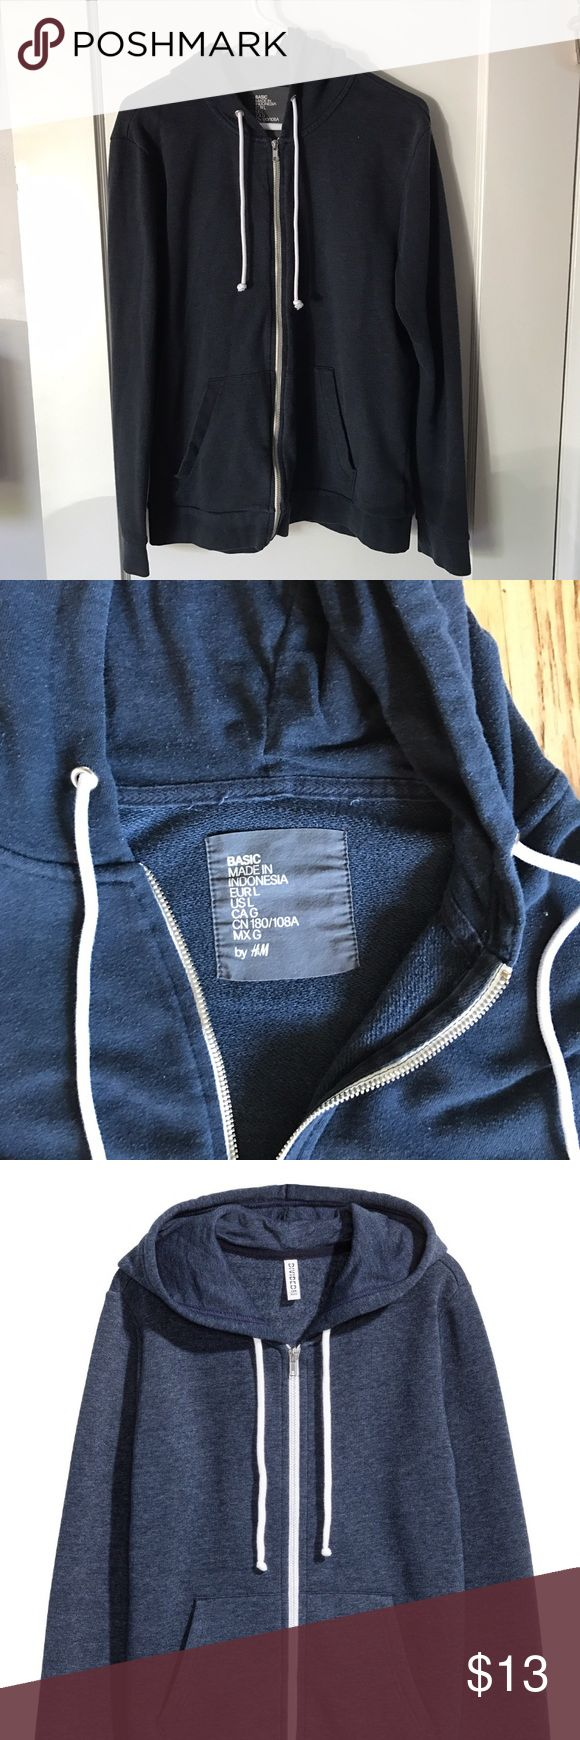 H&M Divided Men's Navy Hoodie GUC: H&M Divided men's navy blue hoodie. Size Large, fits more like a Medium. H&M Shirts Sweatshirts & Hoodies